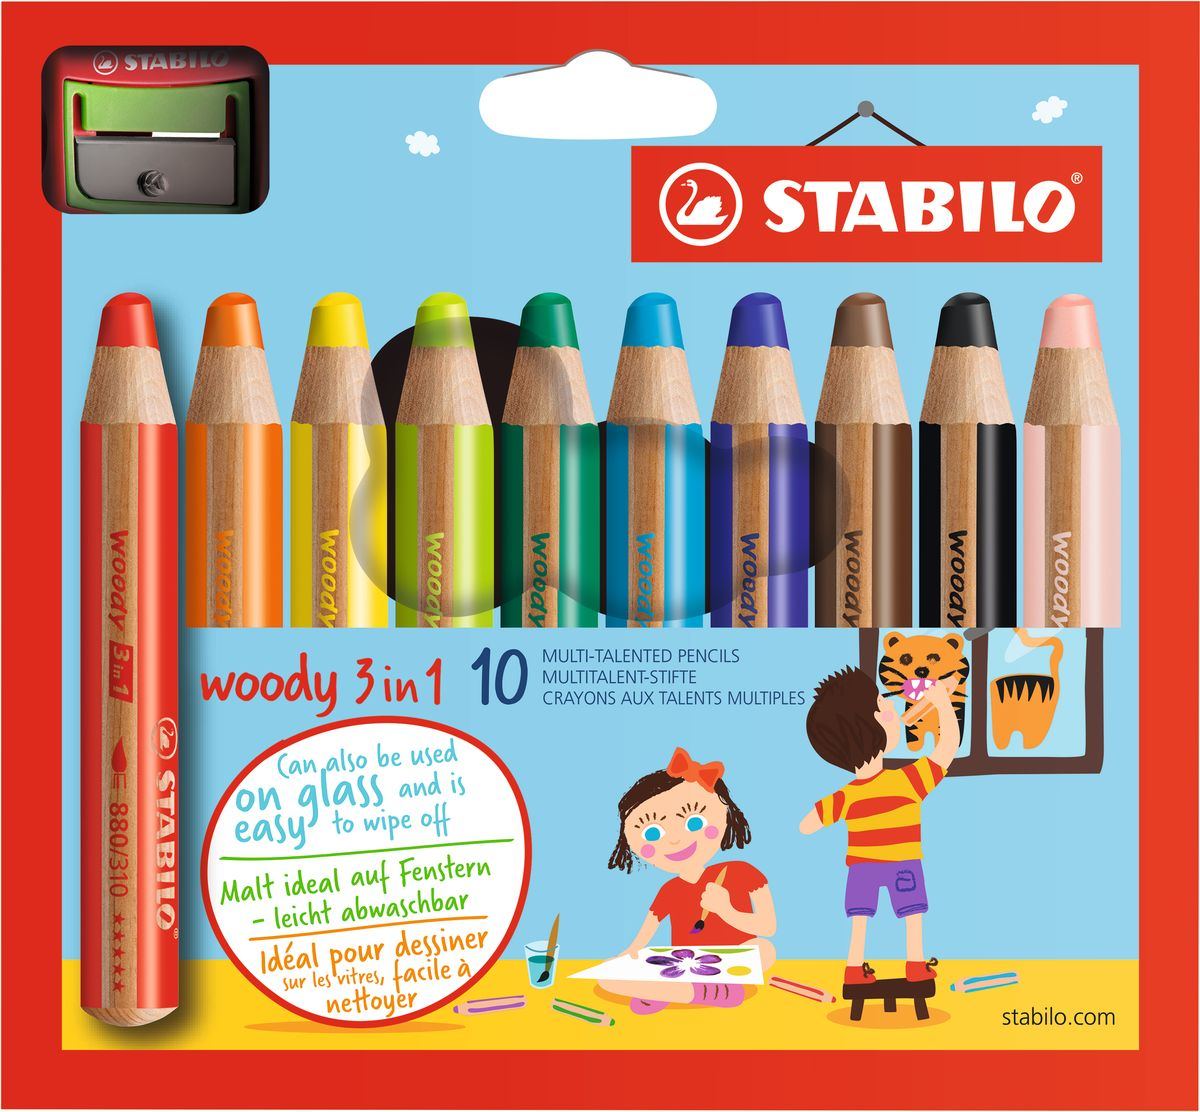 Stabilo Набор цветных карандашей Woody 3 in 1 10 цветов + точилка stabilo 880 woody 3 in 1 multipurpose pencils water color pencils crayon brushes assorted color 6 18 colors